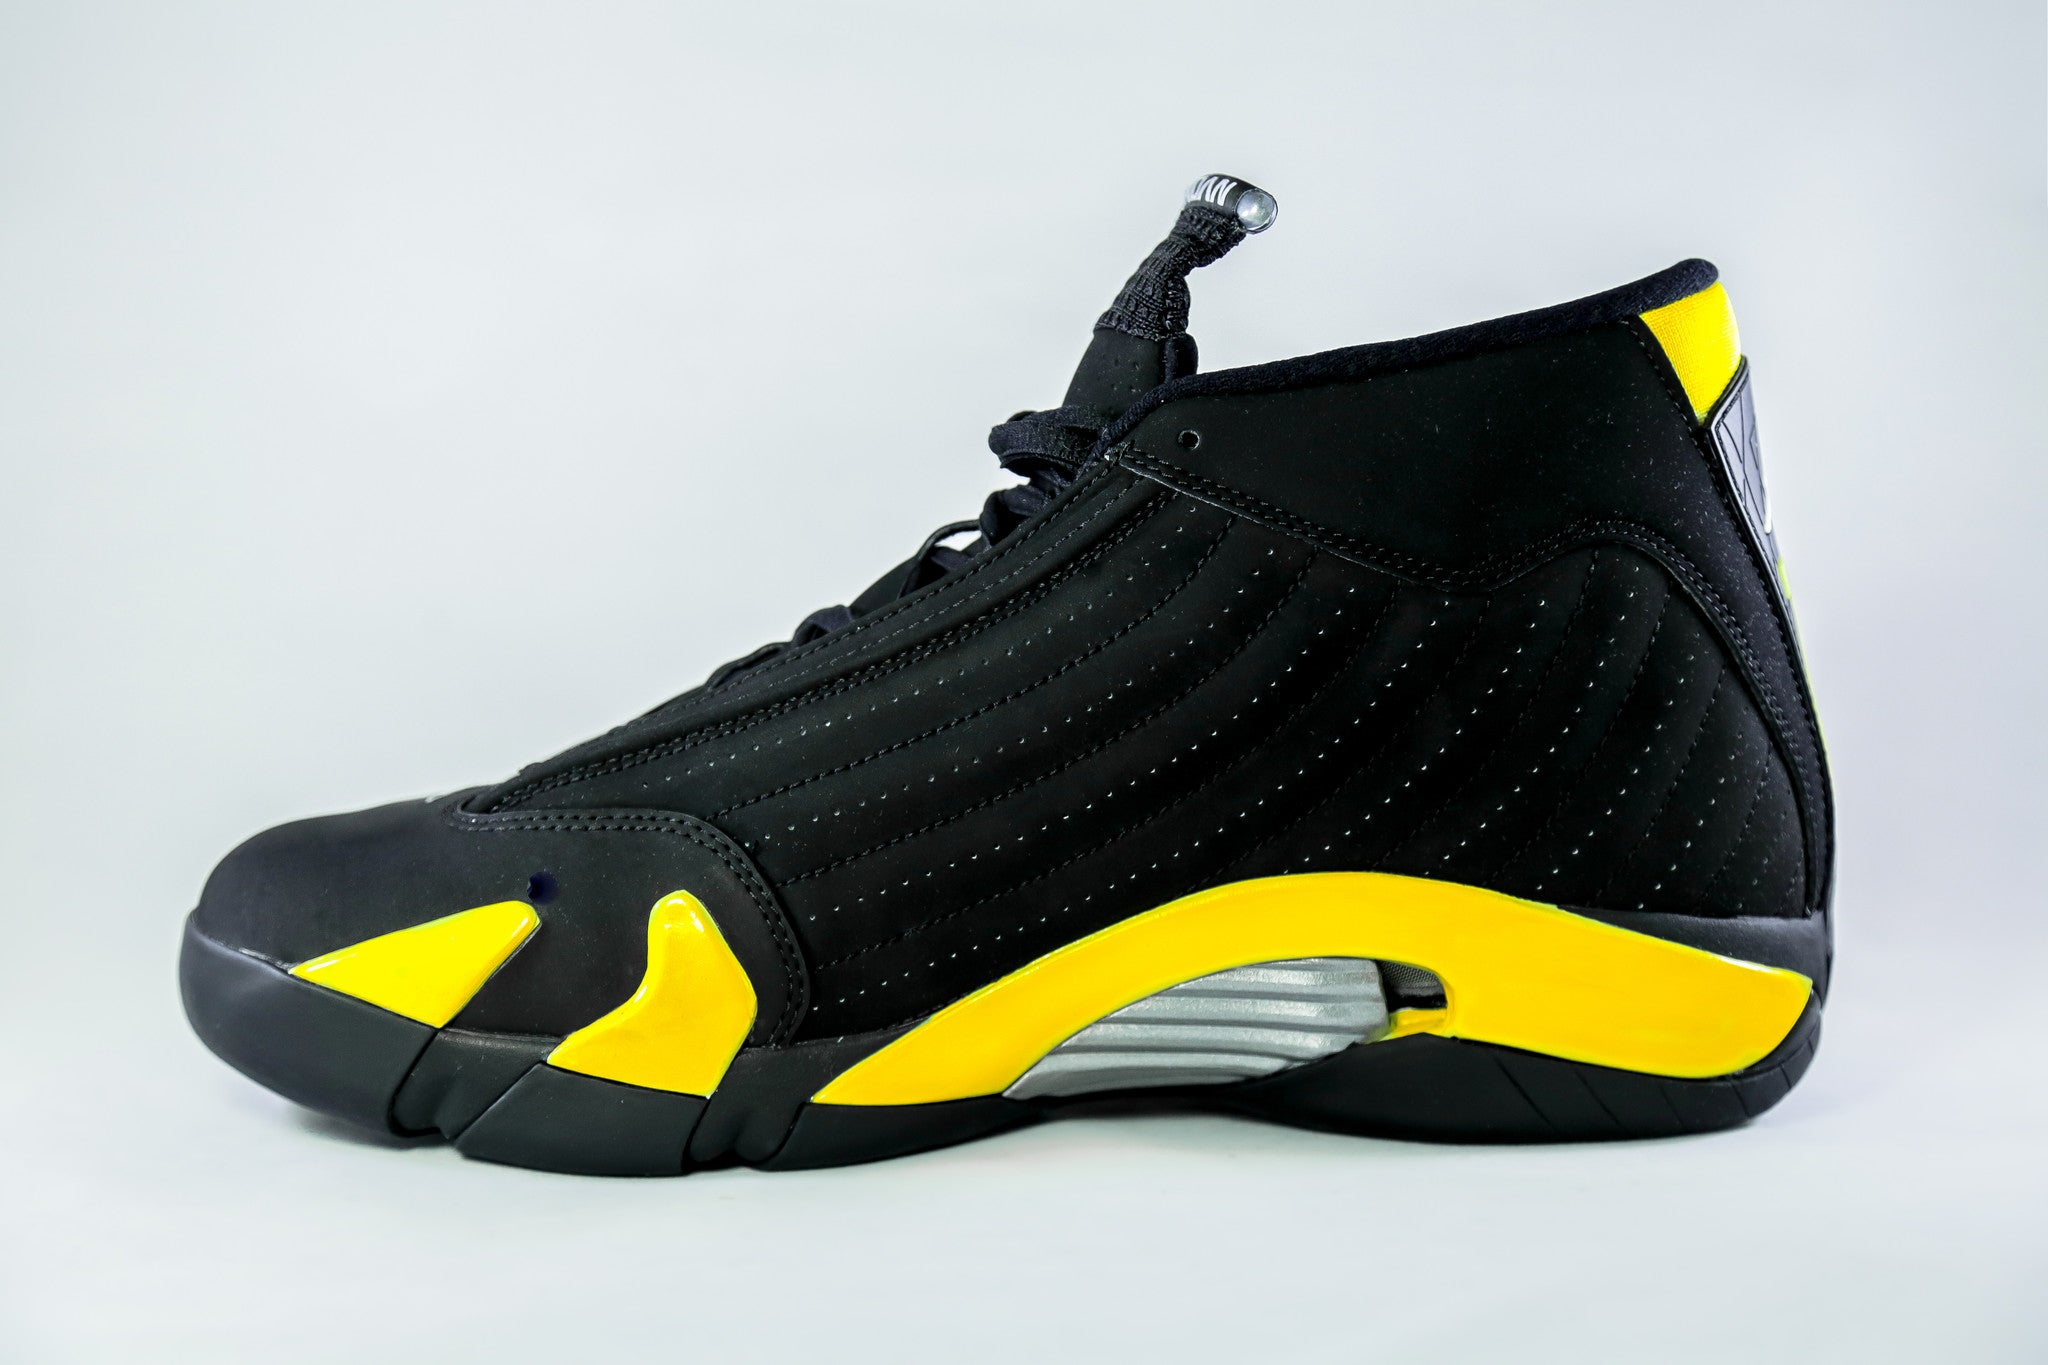 e05c89d14d4ad2 New Air Jordan 14 Retro